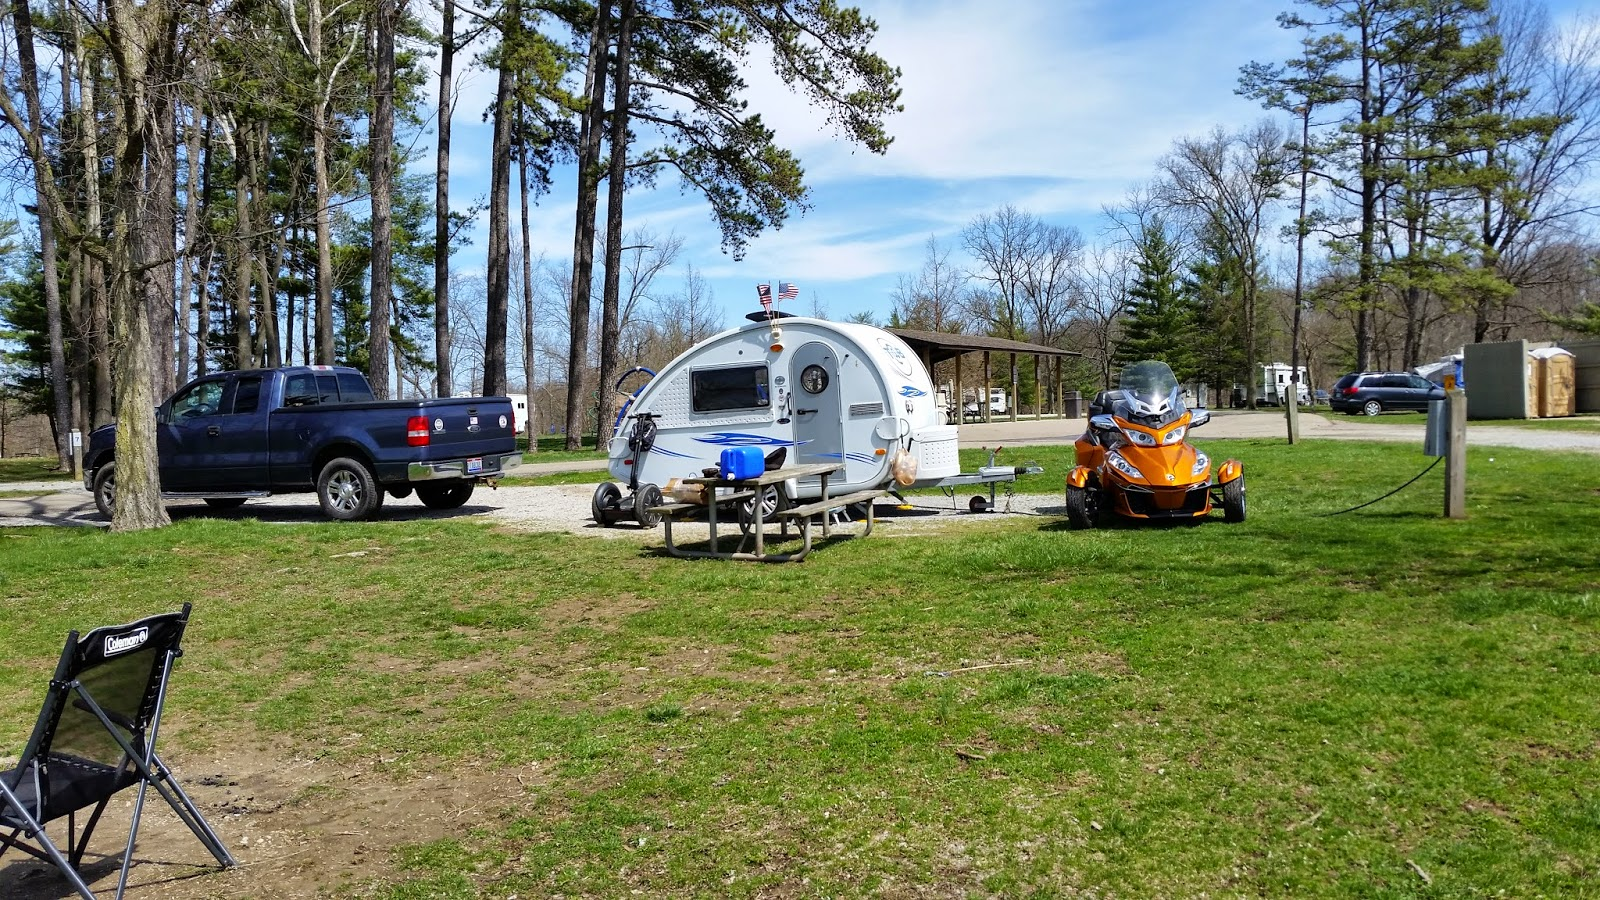 Alan carie 39 s blog 2015 04 04 winton woods campground for Winton woods cabins